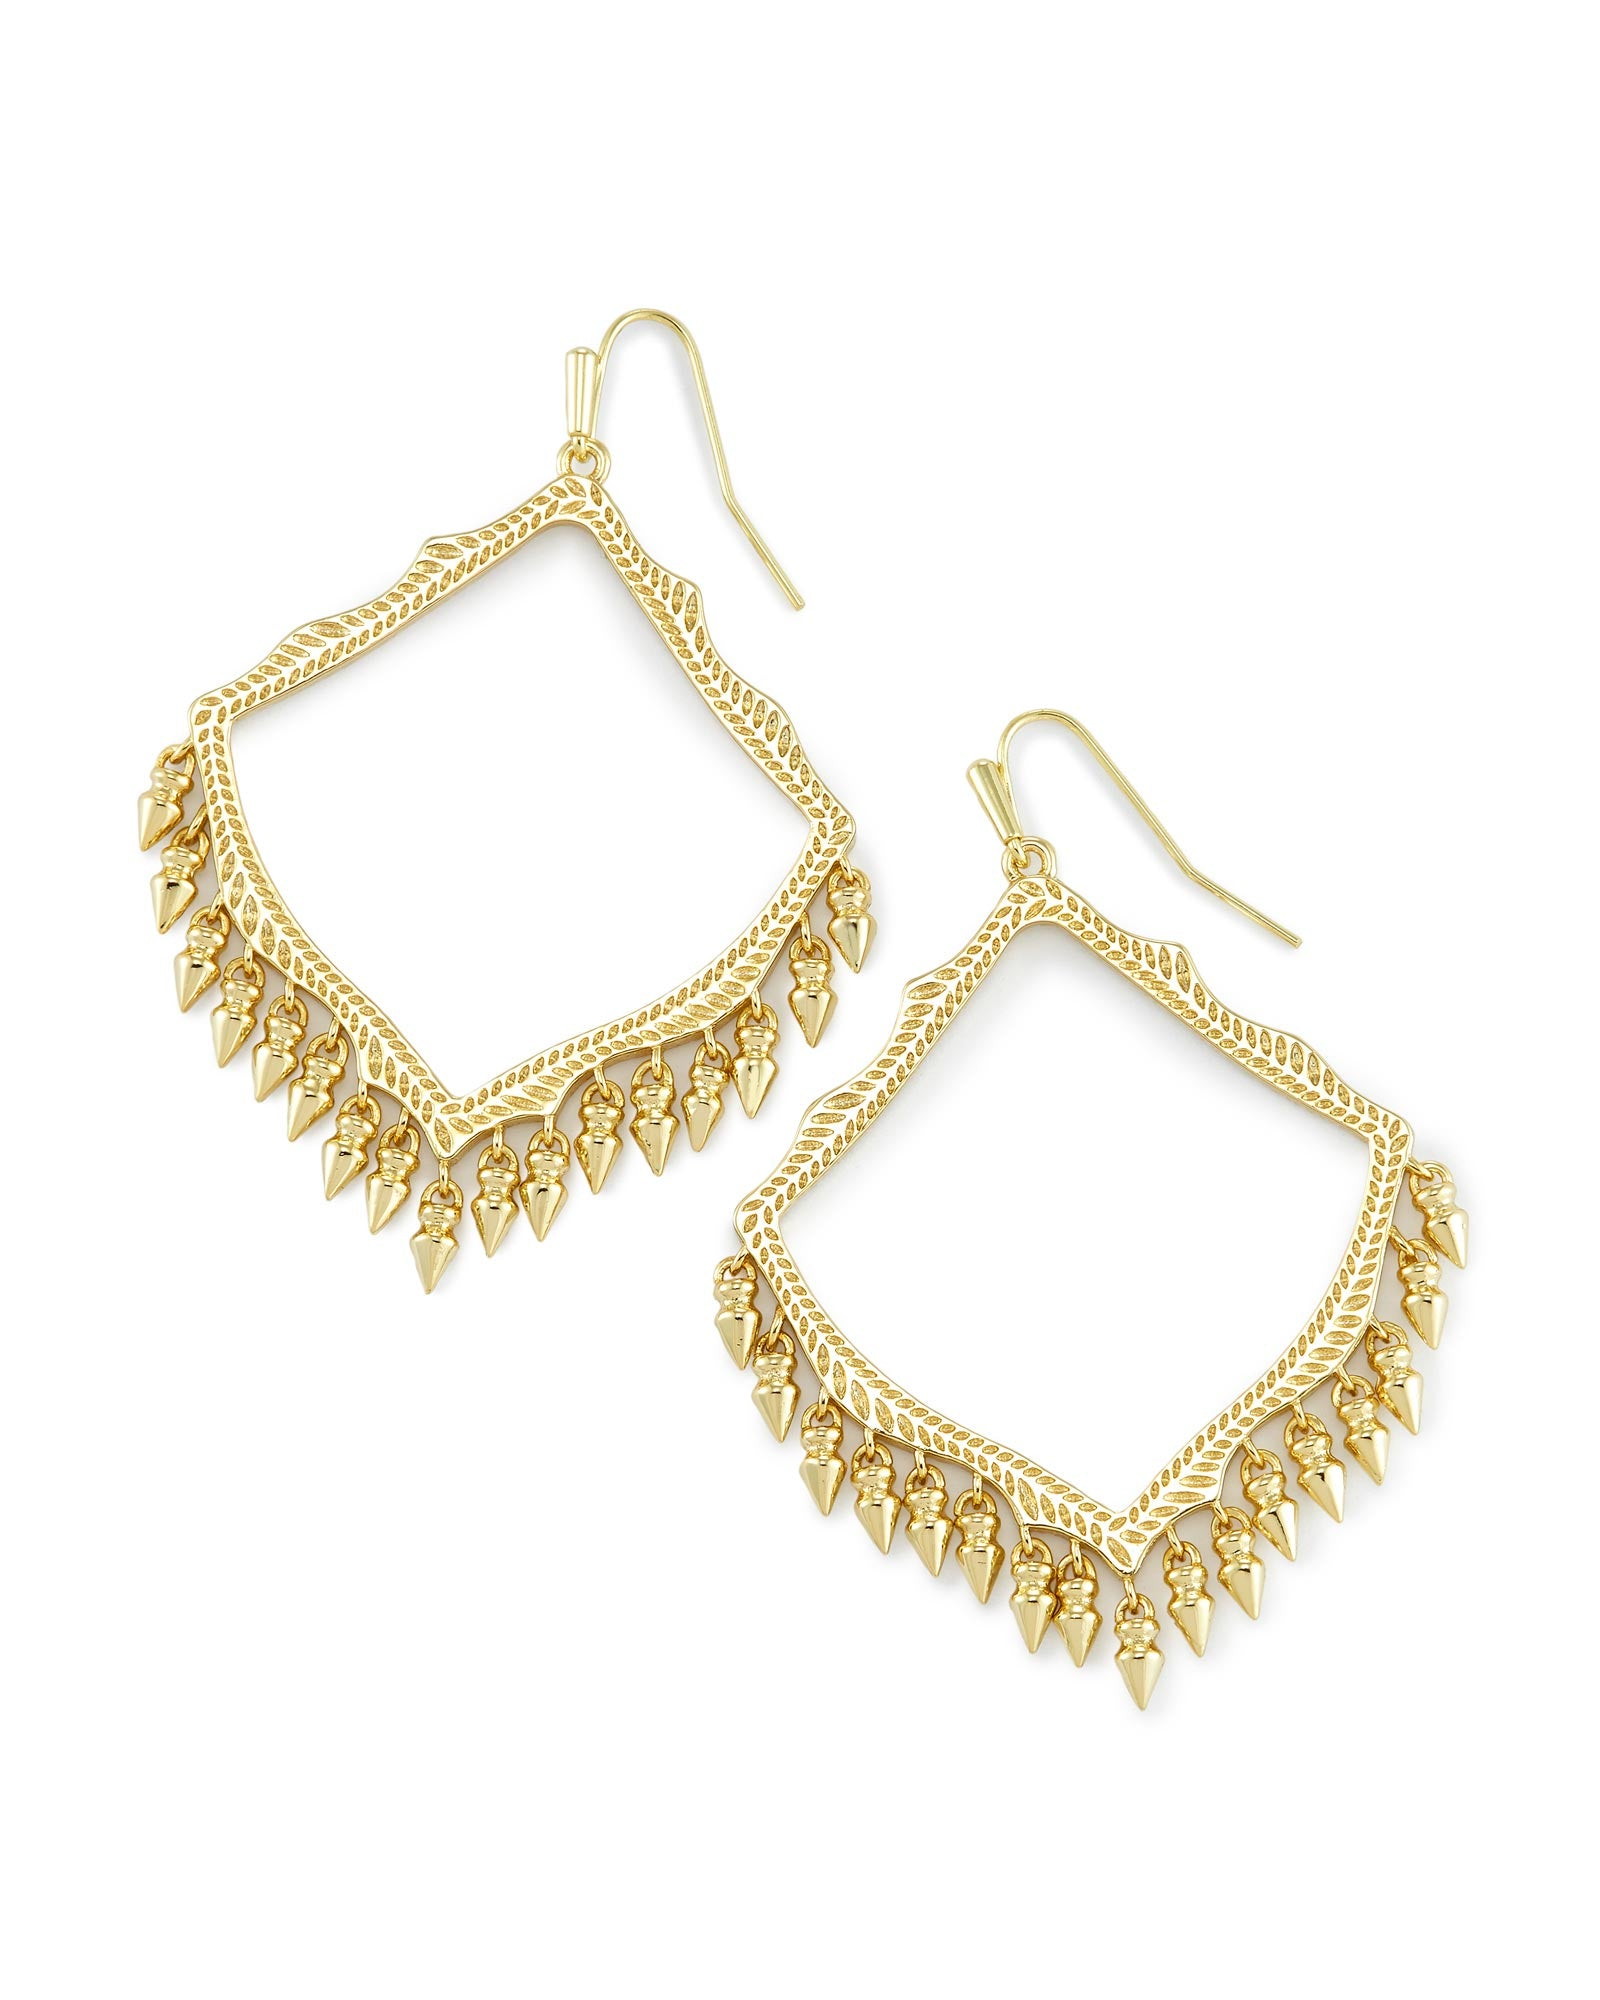 Kendra Scott Lacy Earrings Gold - Gabrielle's Biloxi